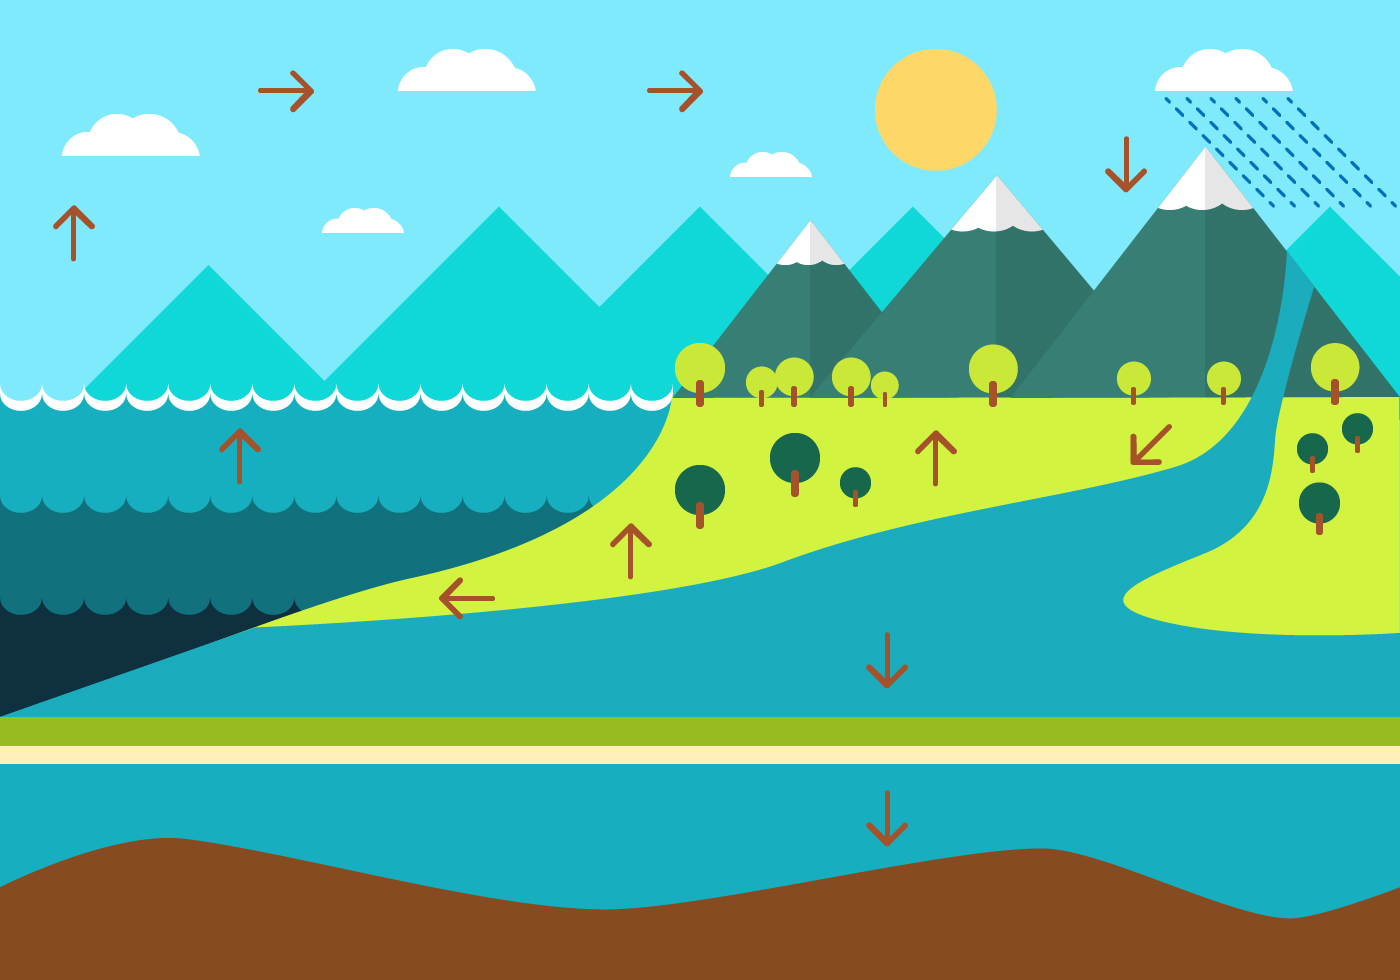 Water cycle diagram free vector art 7978 free downloads free water cycle diagram ccuart Gallery